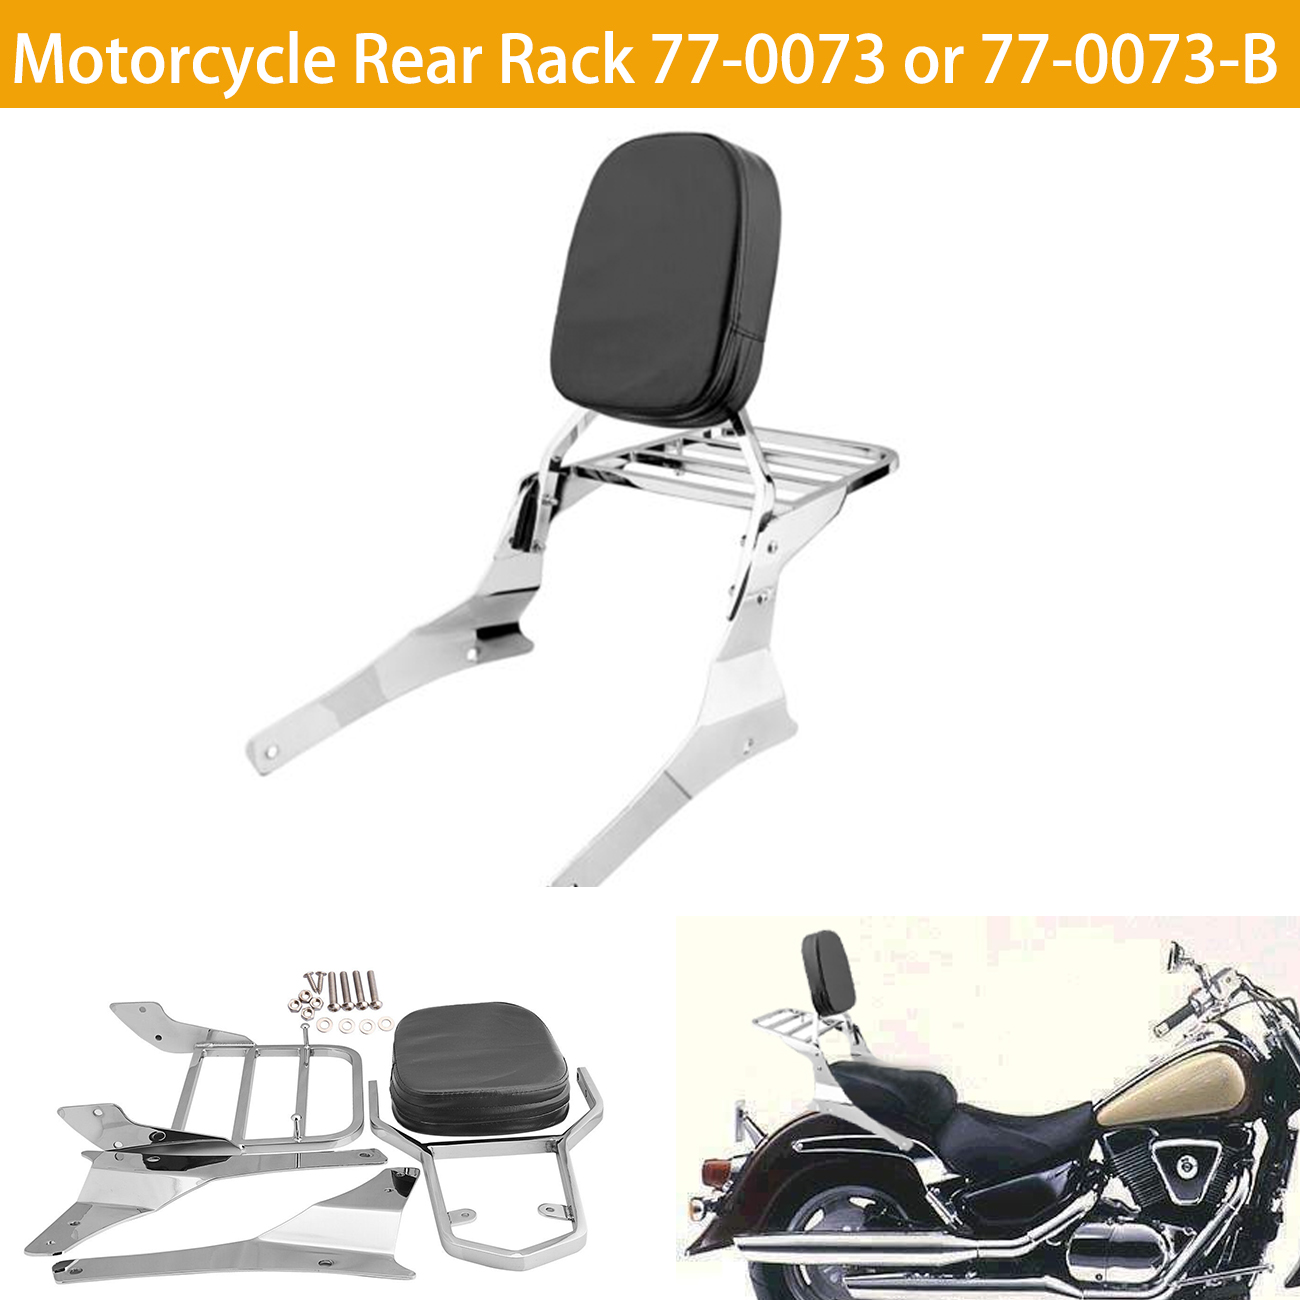 Samger Motorcycle Passenger Sissy Bar Luggage Rear Rack Backrest For Suzuki Intruder / Volusia VL800 VL400 Boulevard C50